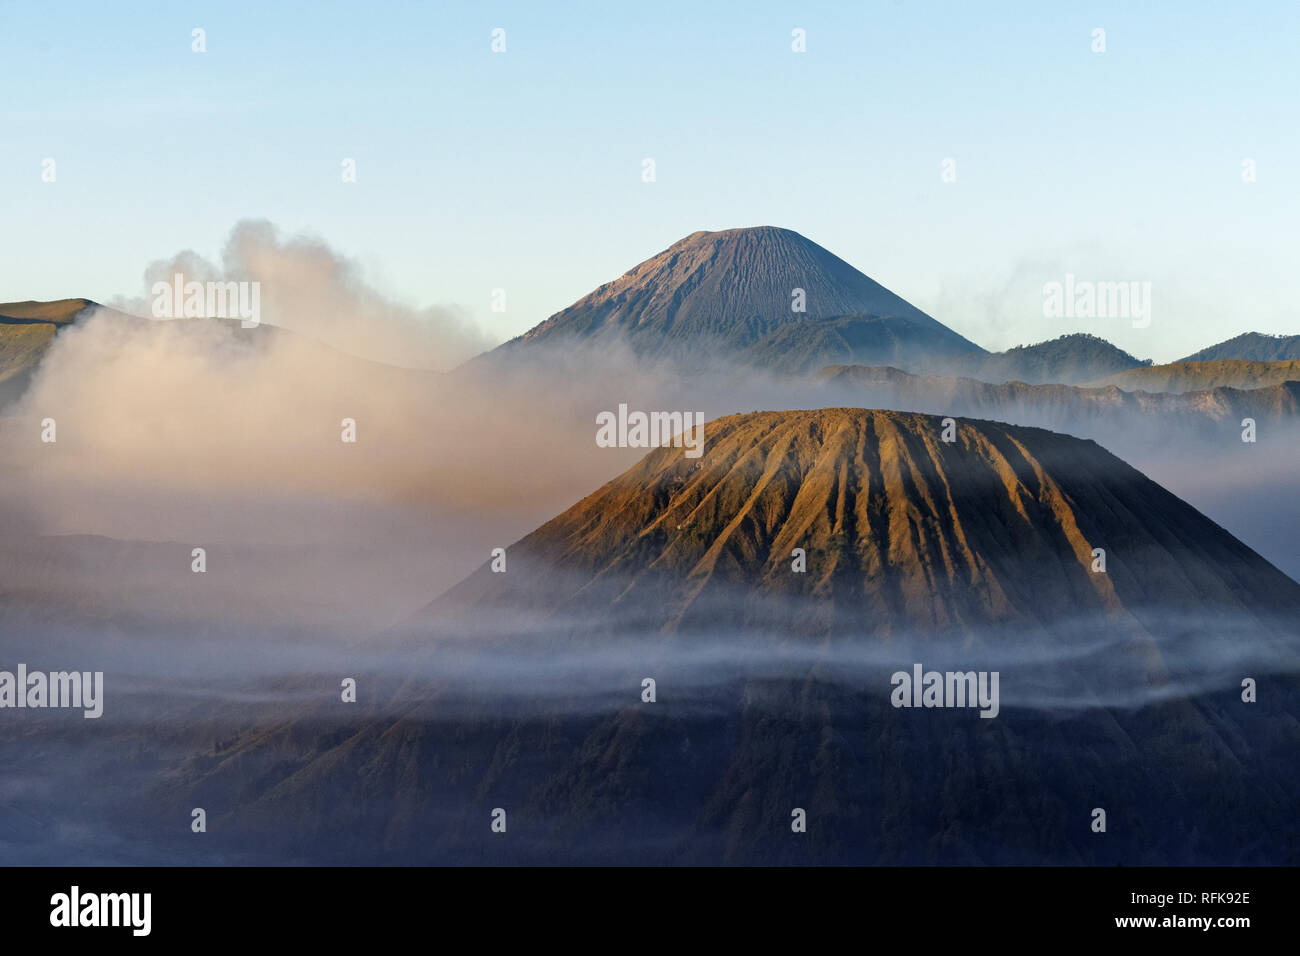 View in the morning light on a volcanic mountain surrounded by clouds and fog with strongly structured flanks - Location: Indonesia, Java, Mt. Bromo - Stock Image